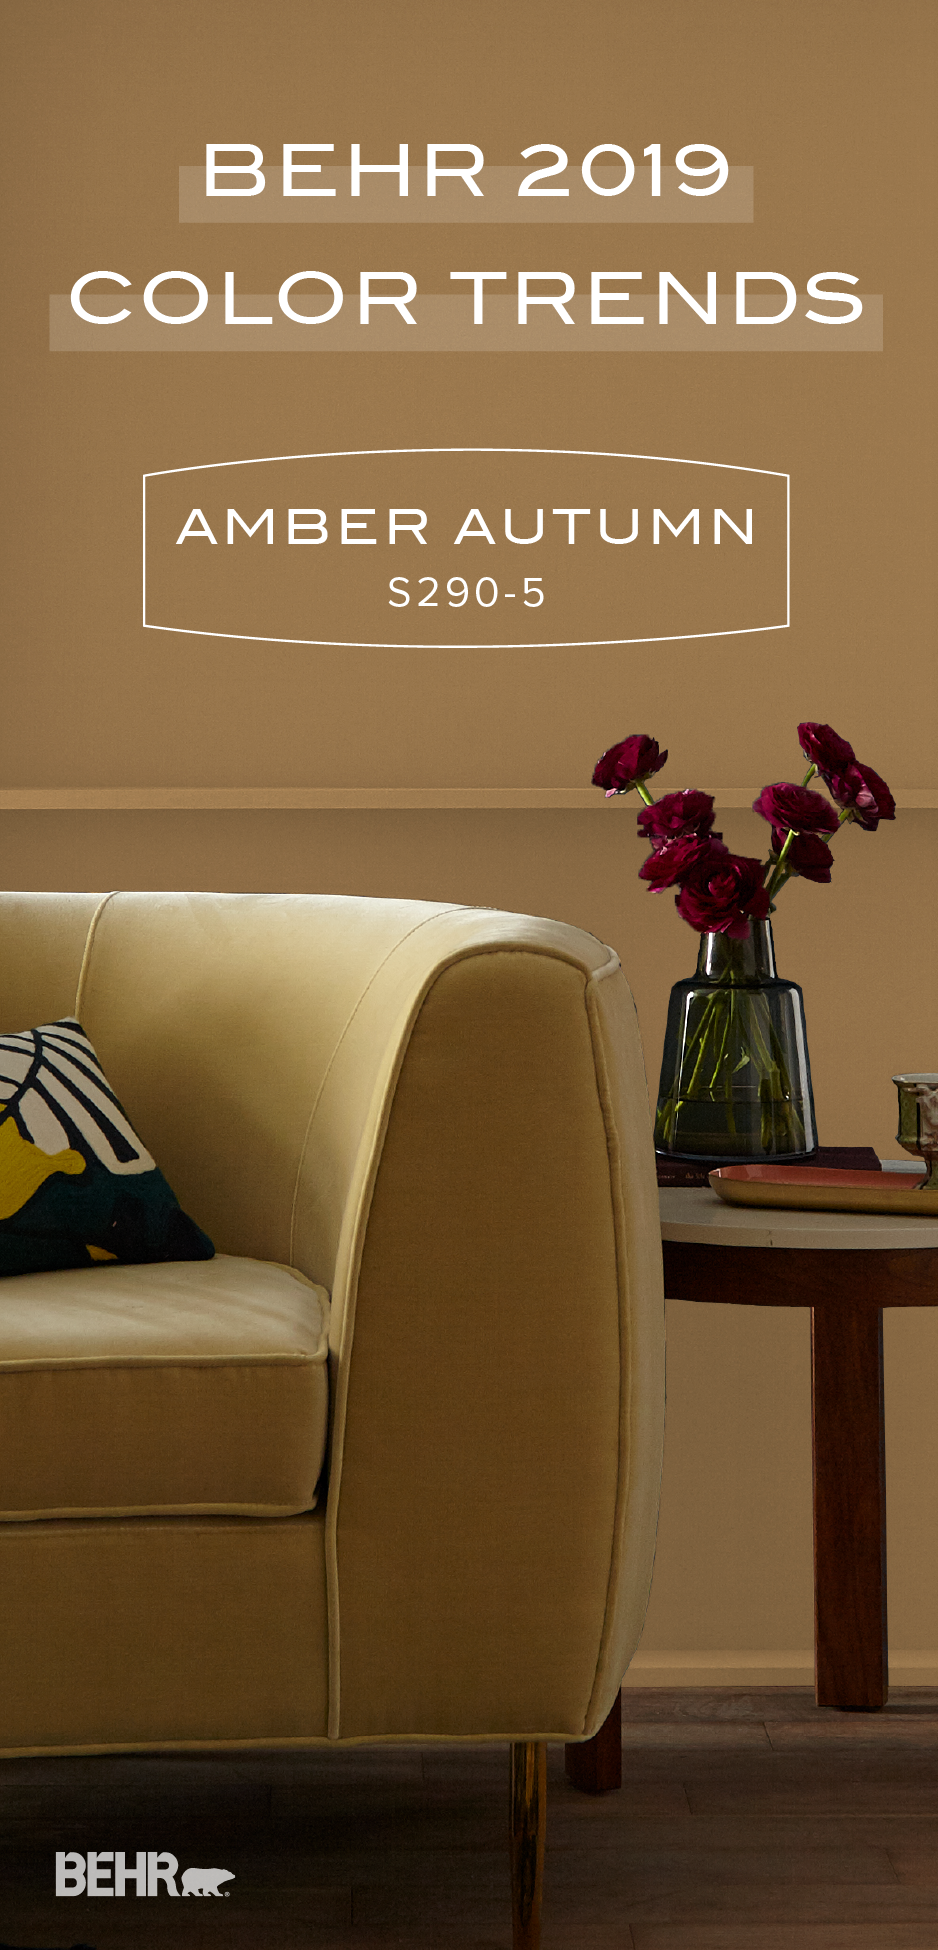 this fall  sink into the warm and cozy hue of amber autumn by behr paint  as part of the 2019